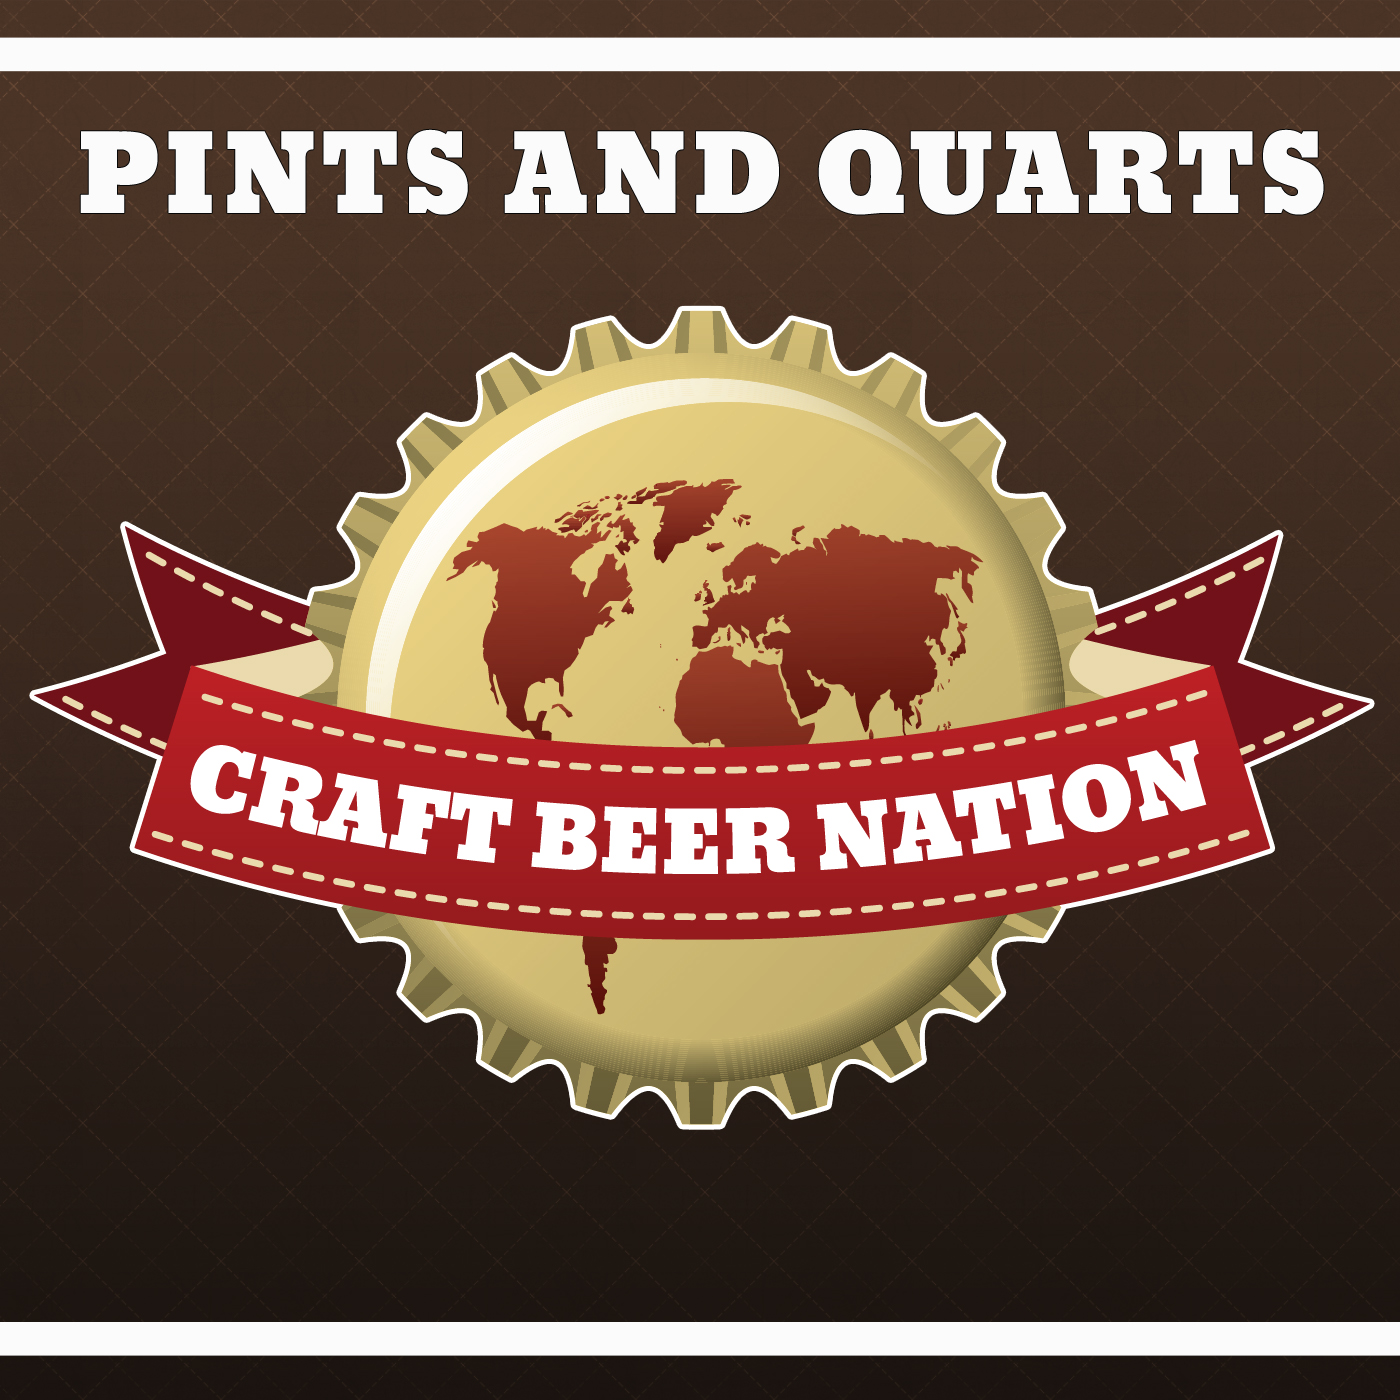 Pints and Quarts | Craft Beer Nation